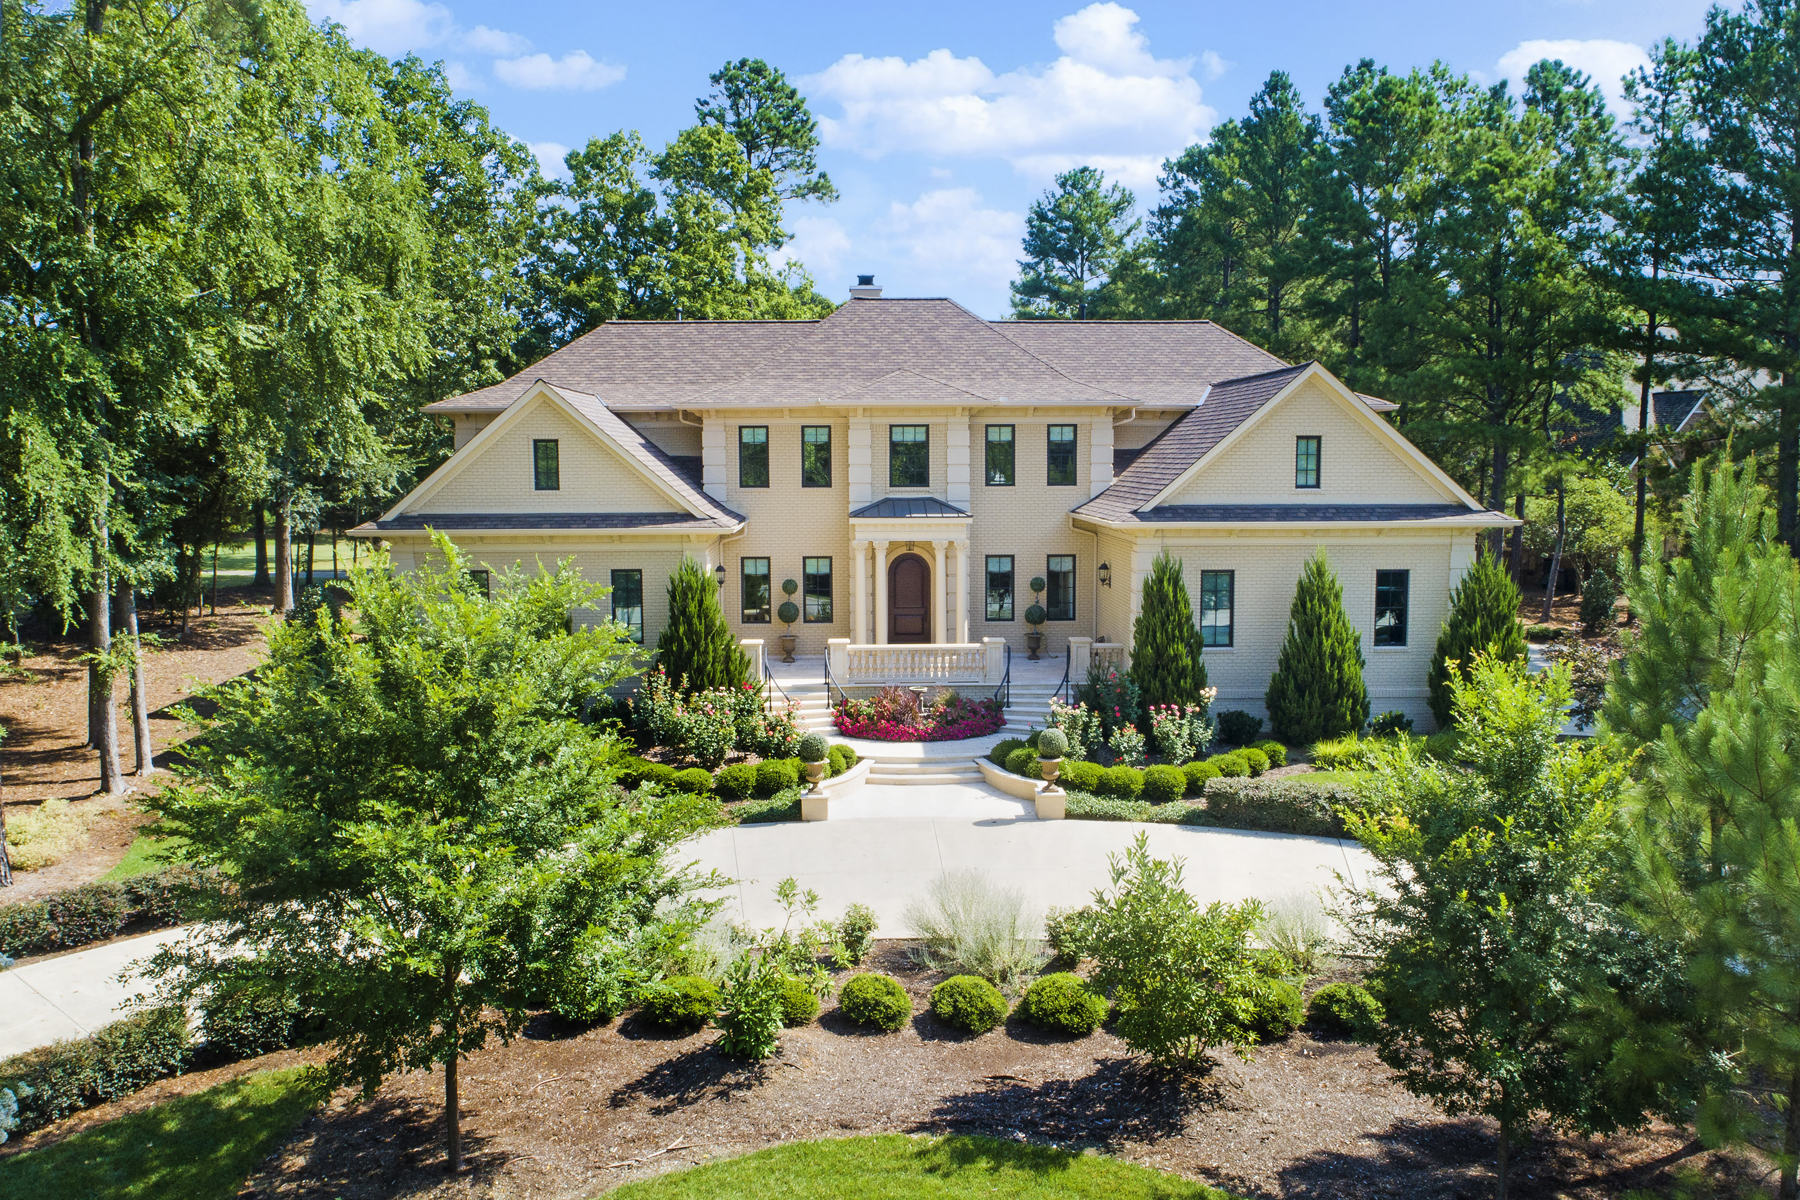 Single Family Homes for Active at Vision for the Future 12081 Morehead Chapel Hill, North Carolina 27517 United States